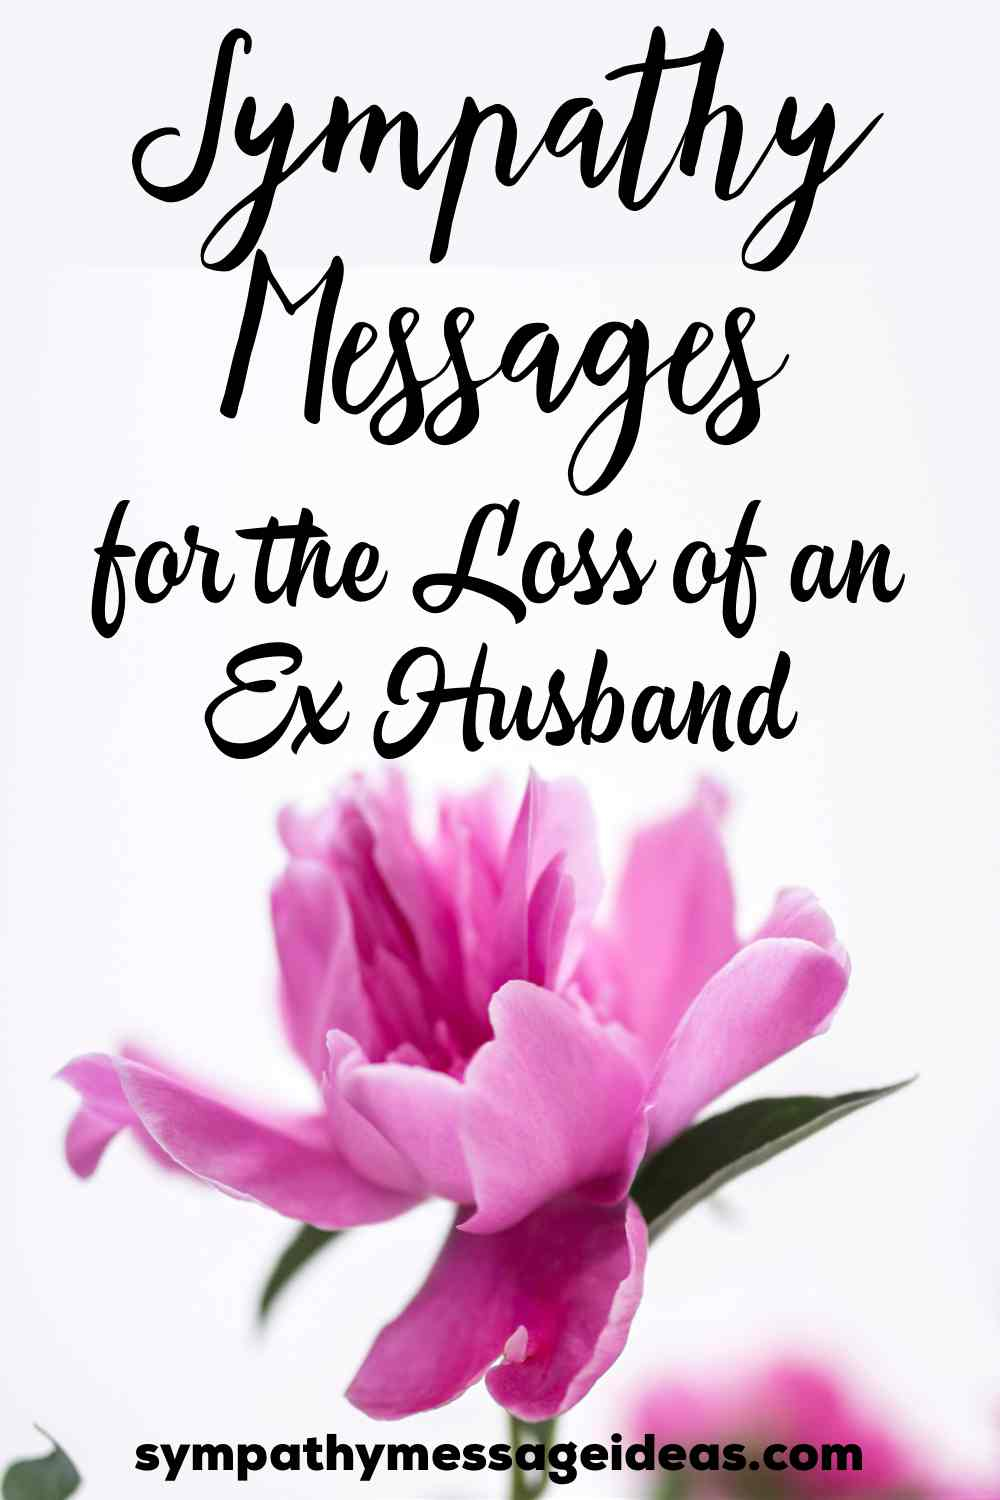 sympathy messages for loss of ex husband